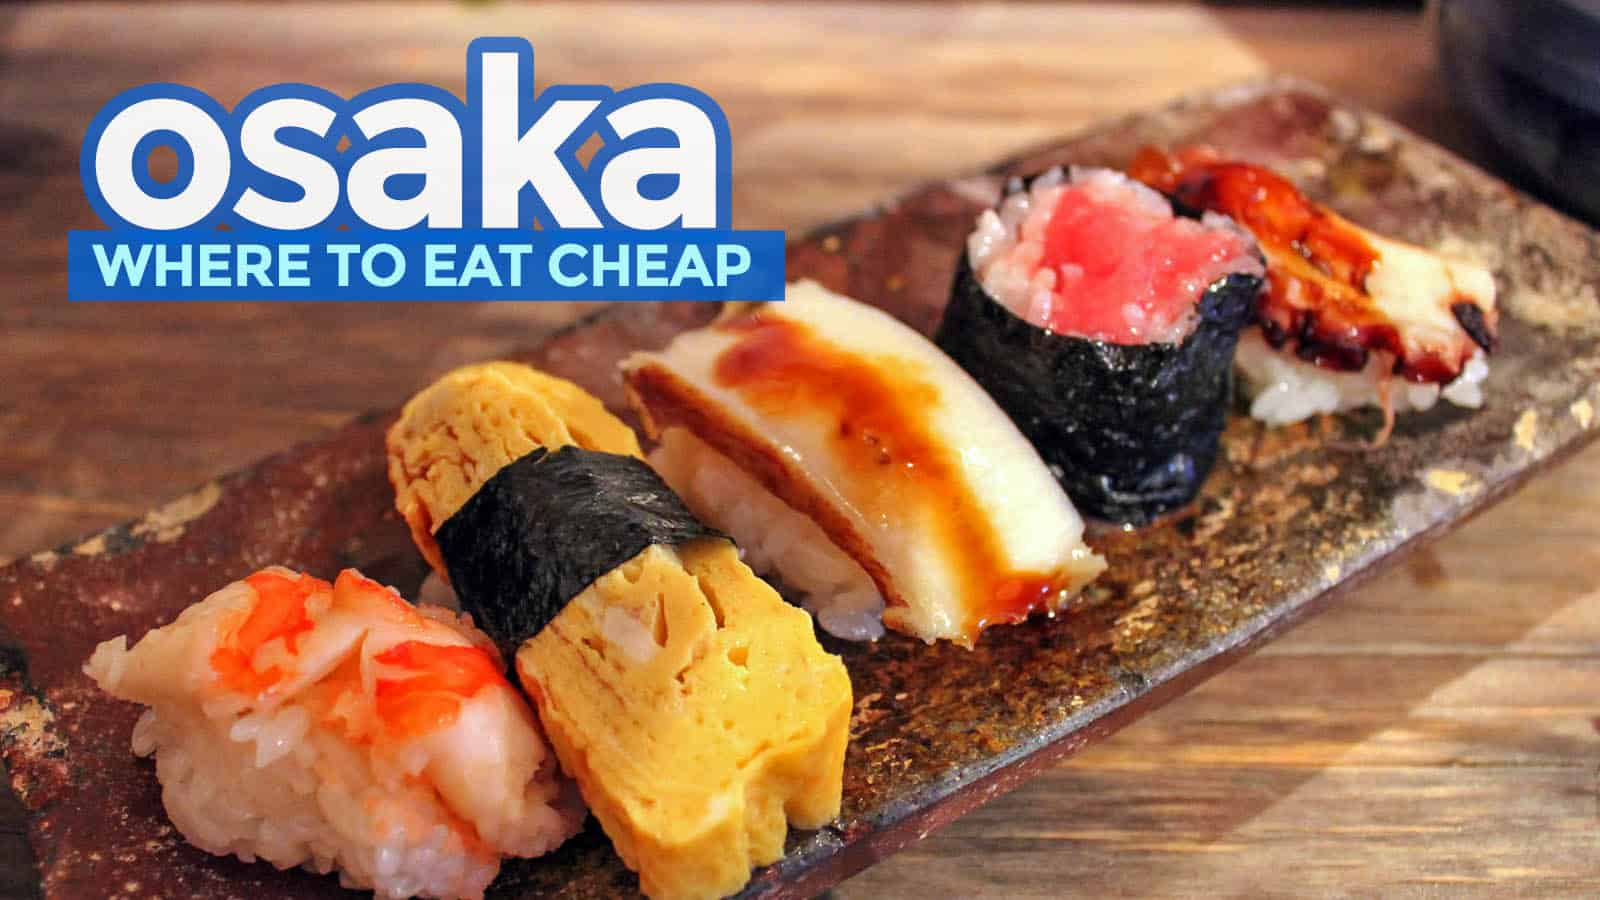 WHERE TO EAT CHEAP IN OSAKA